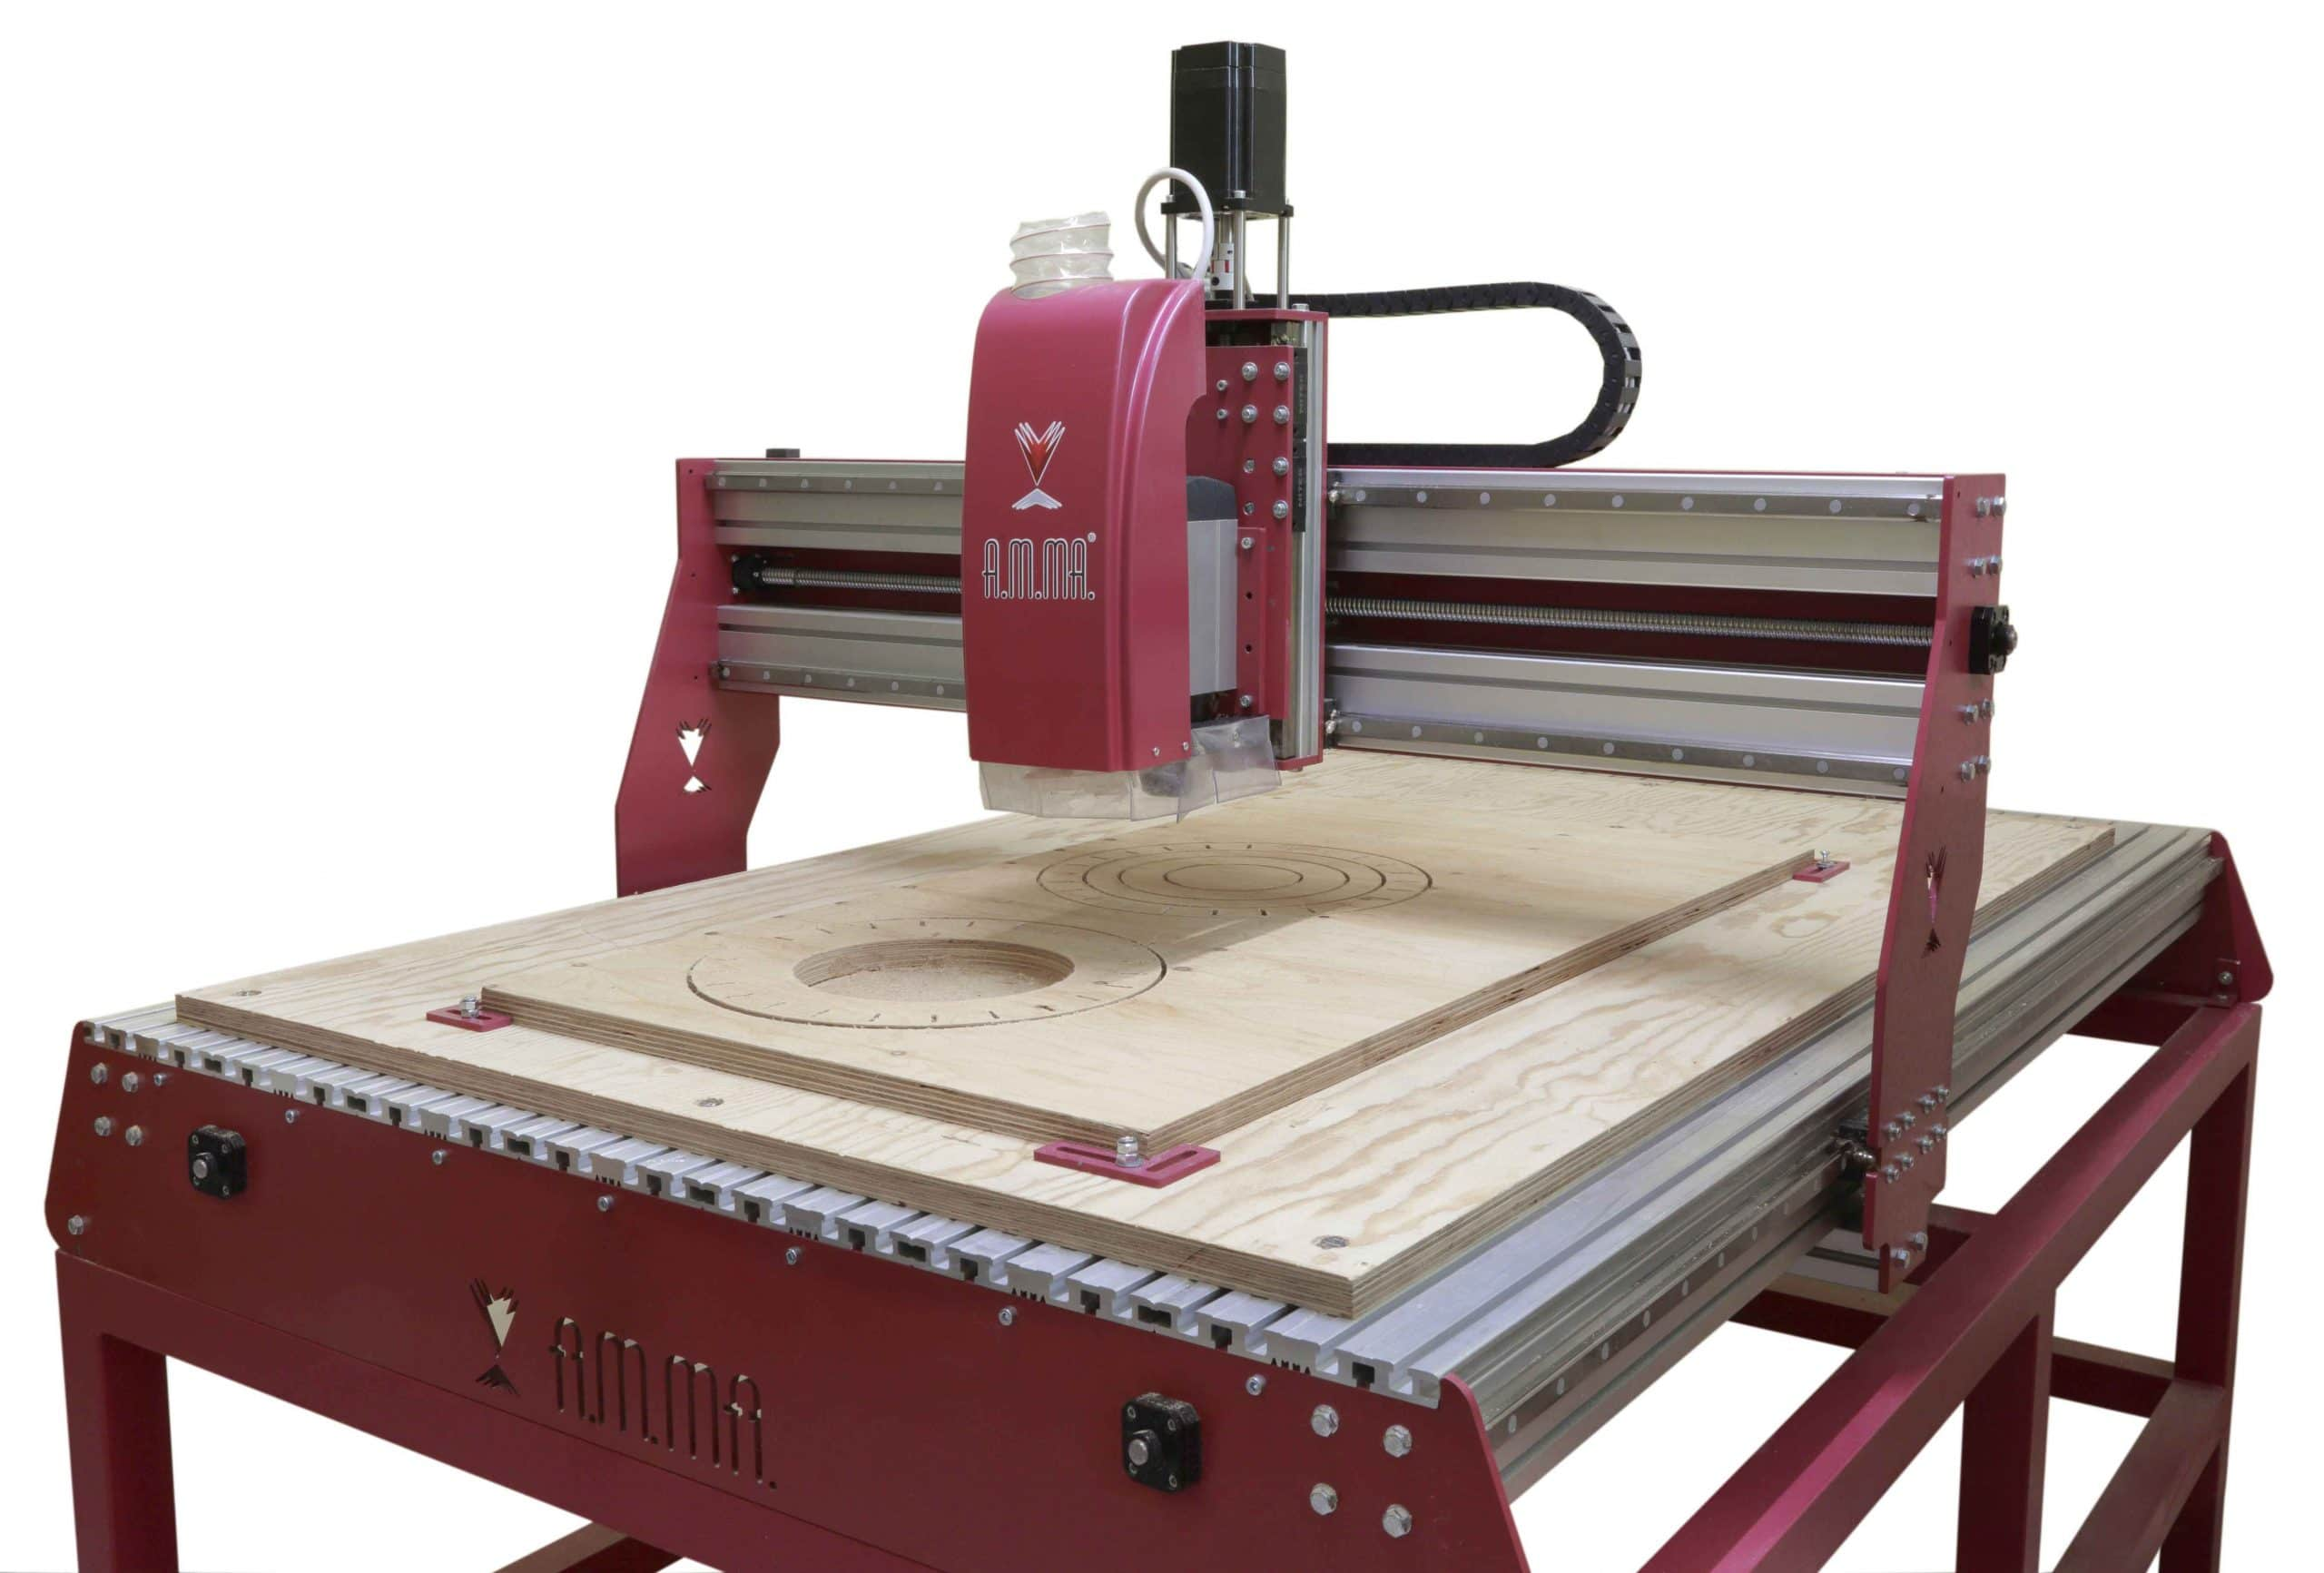 Multypla 2020 cnc machine